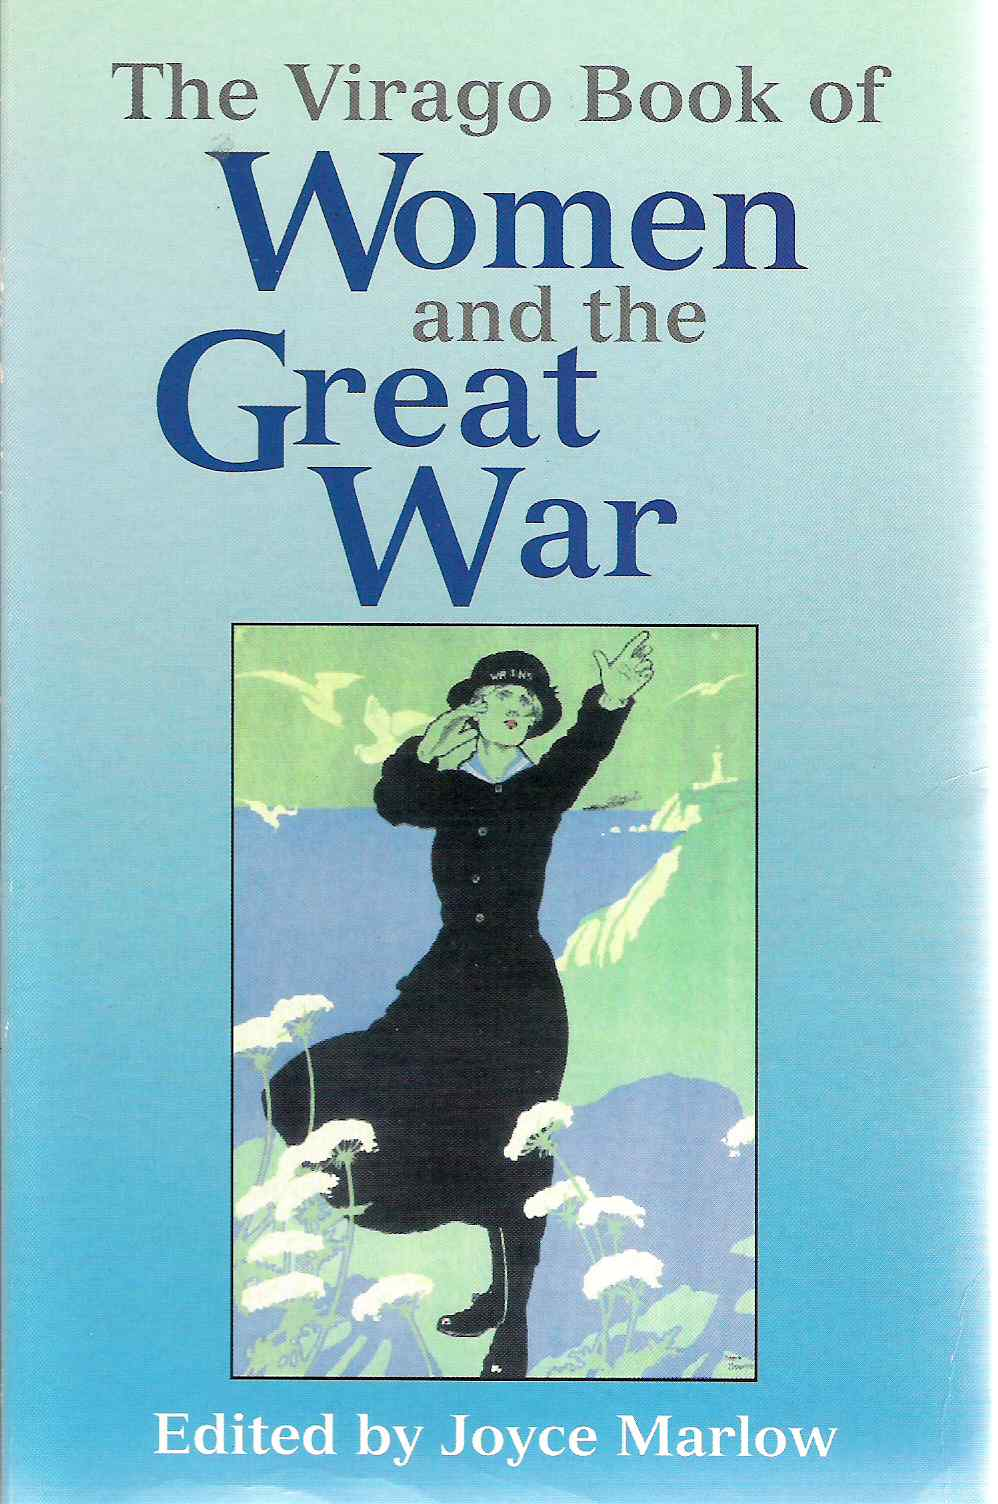 Picture of Dust Jacket for Women In The Great War